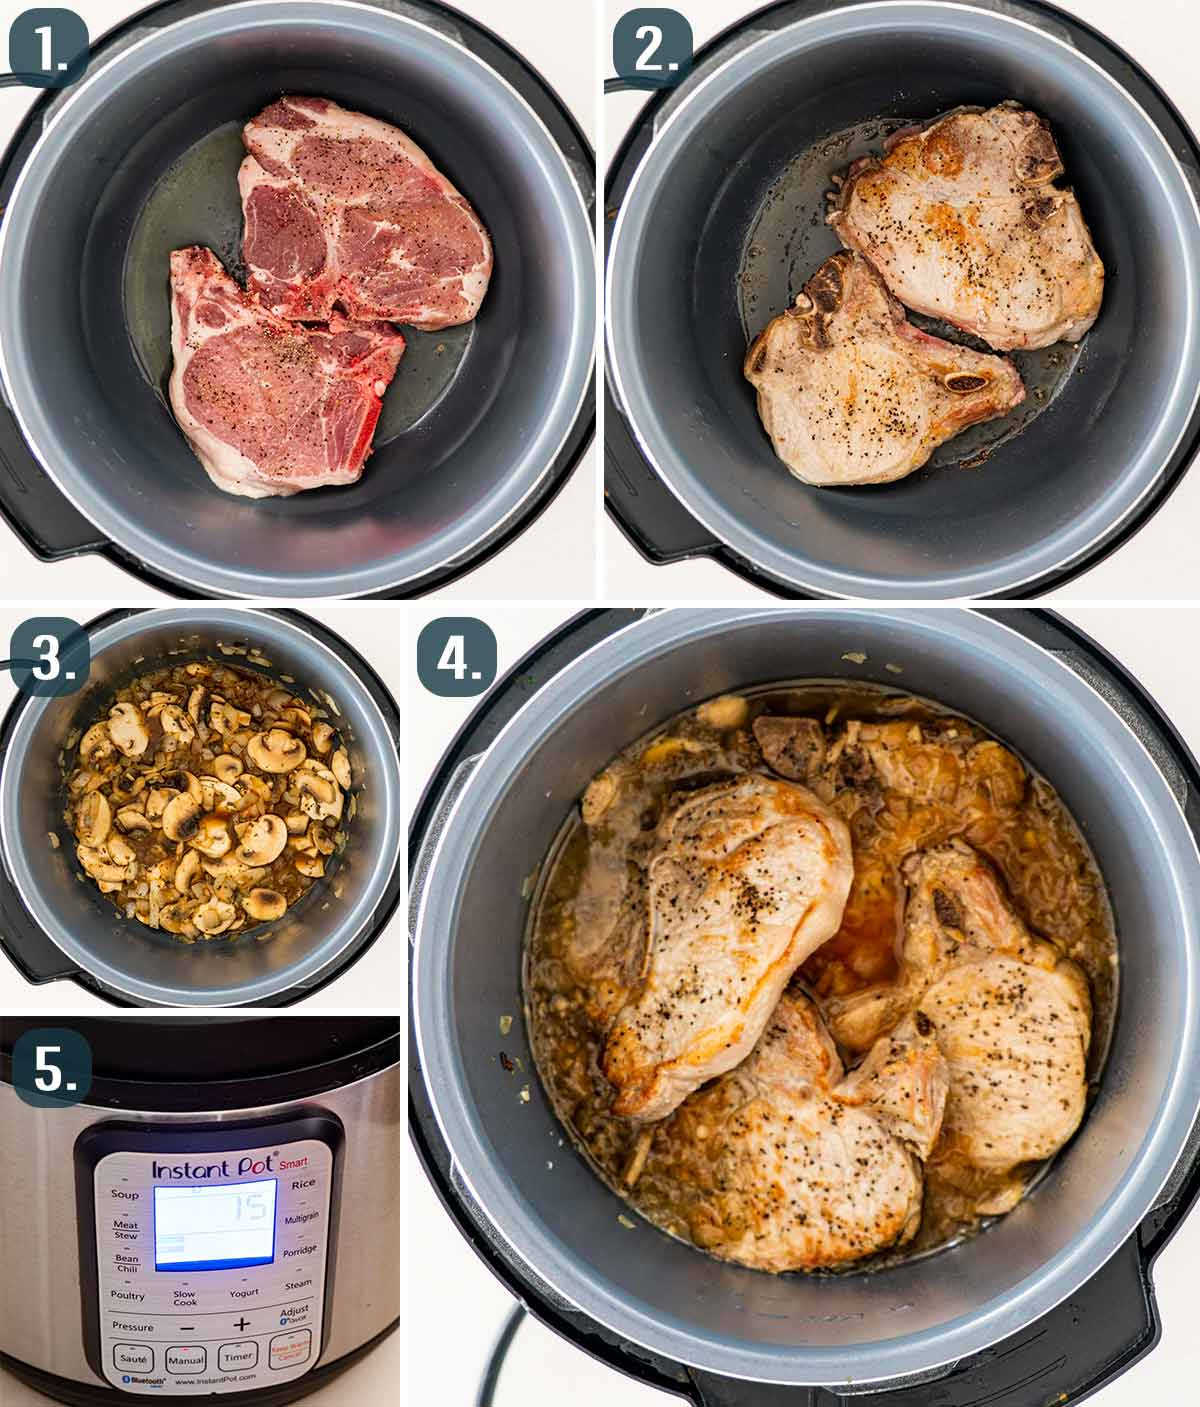 process shots showing how to make pork chops with mushroom gravy in the instant pot.